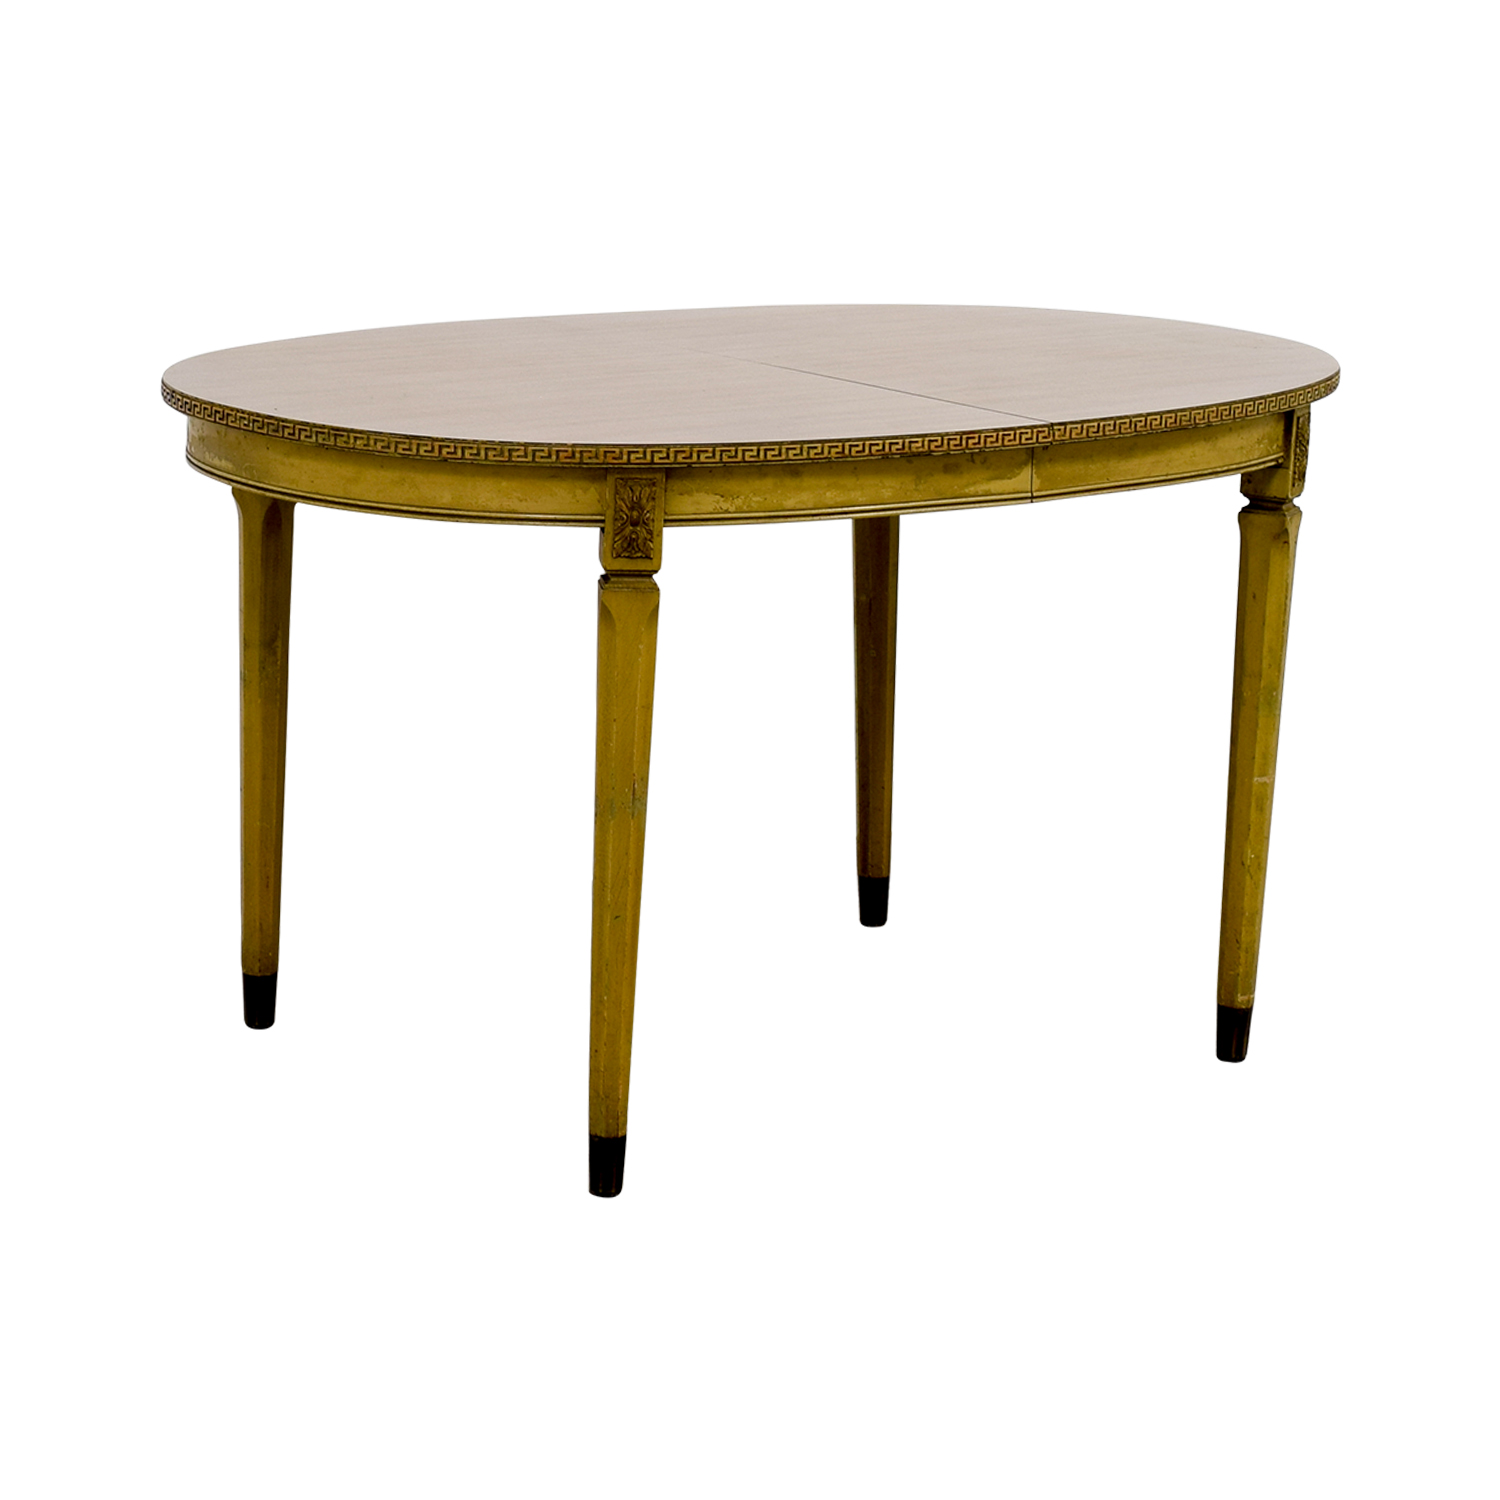 ... Buy Vintage Greek Key Dining Table With Two Leaves Dinner Tables ...